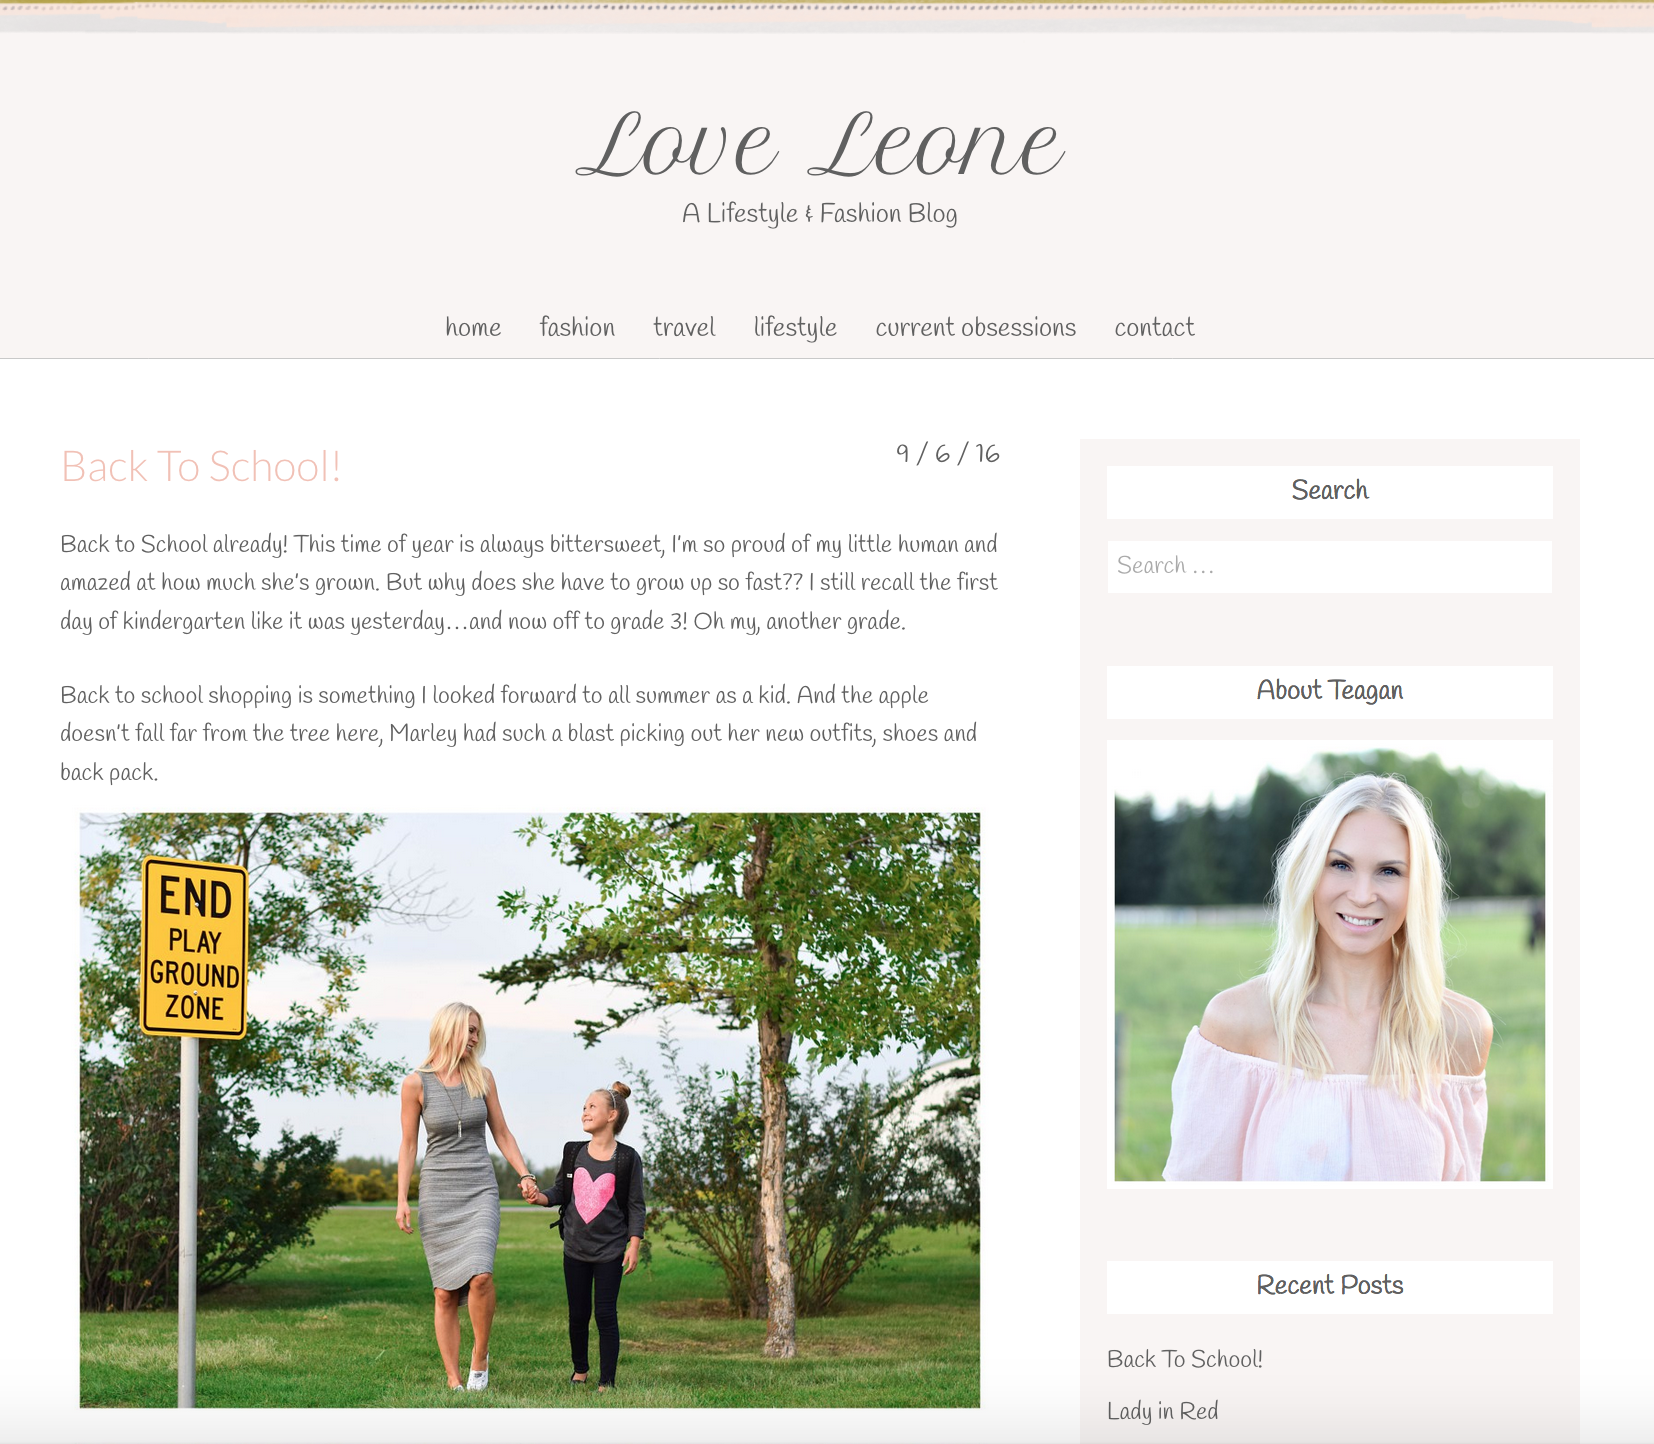 Website soft colors - Adorable Website Running On An Angie Makes Wordpress Theme Love Her Soft Color Choices